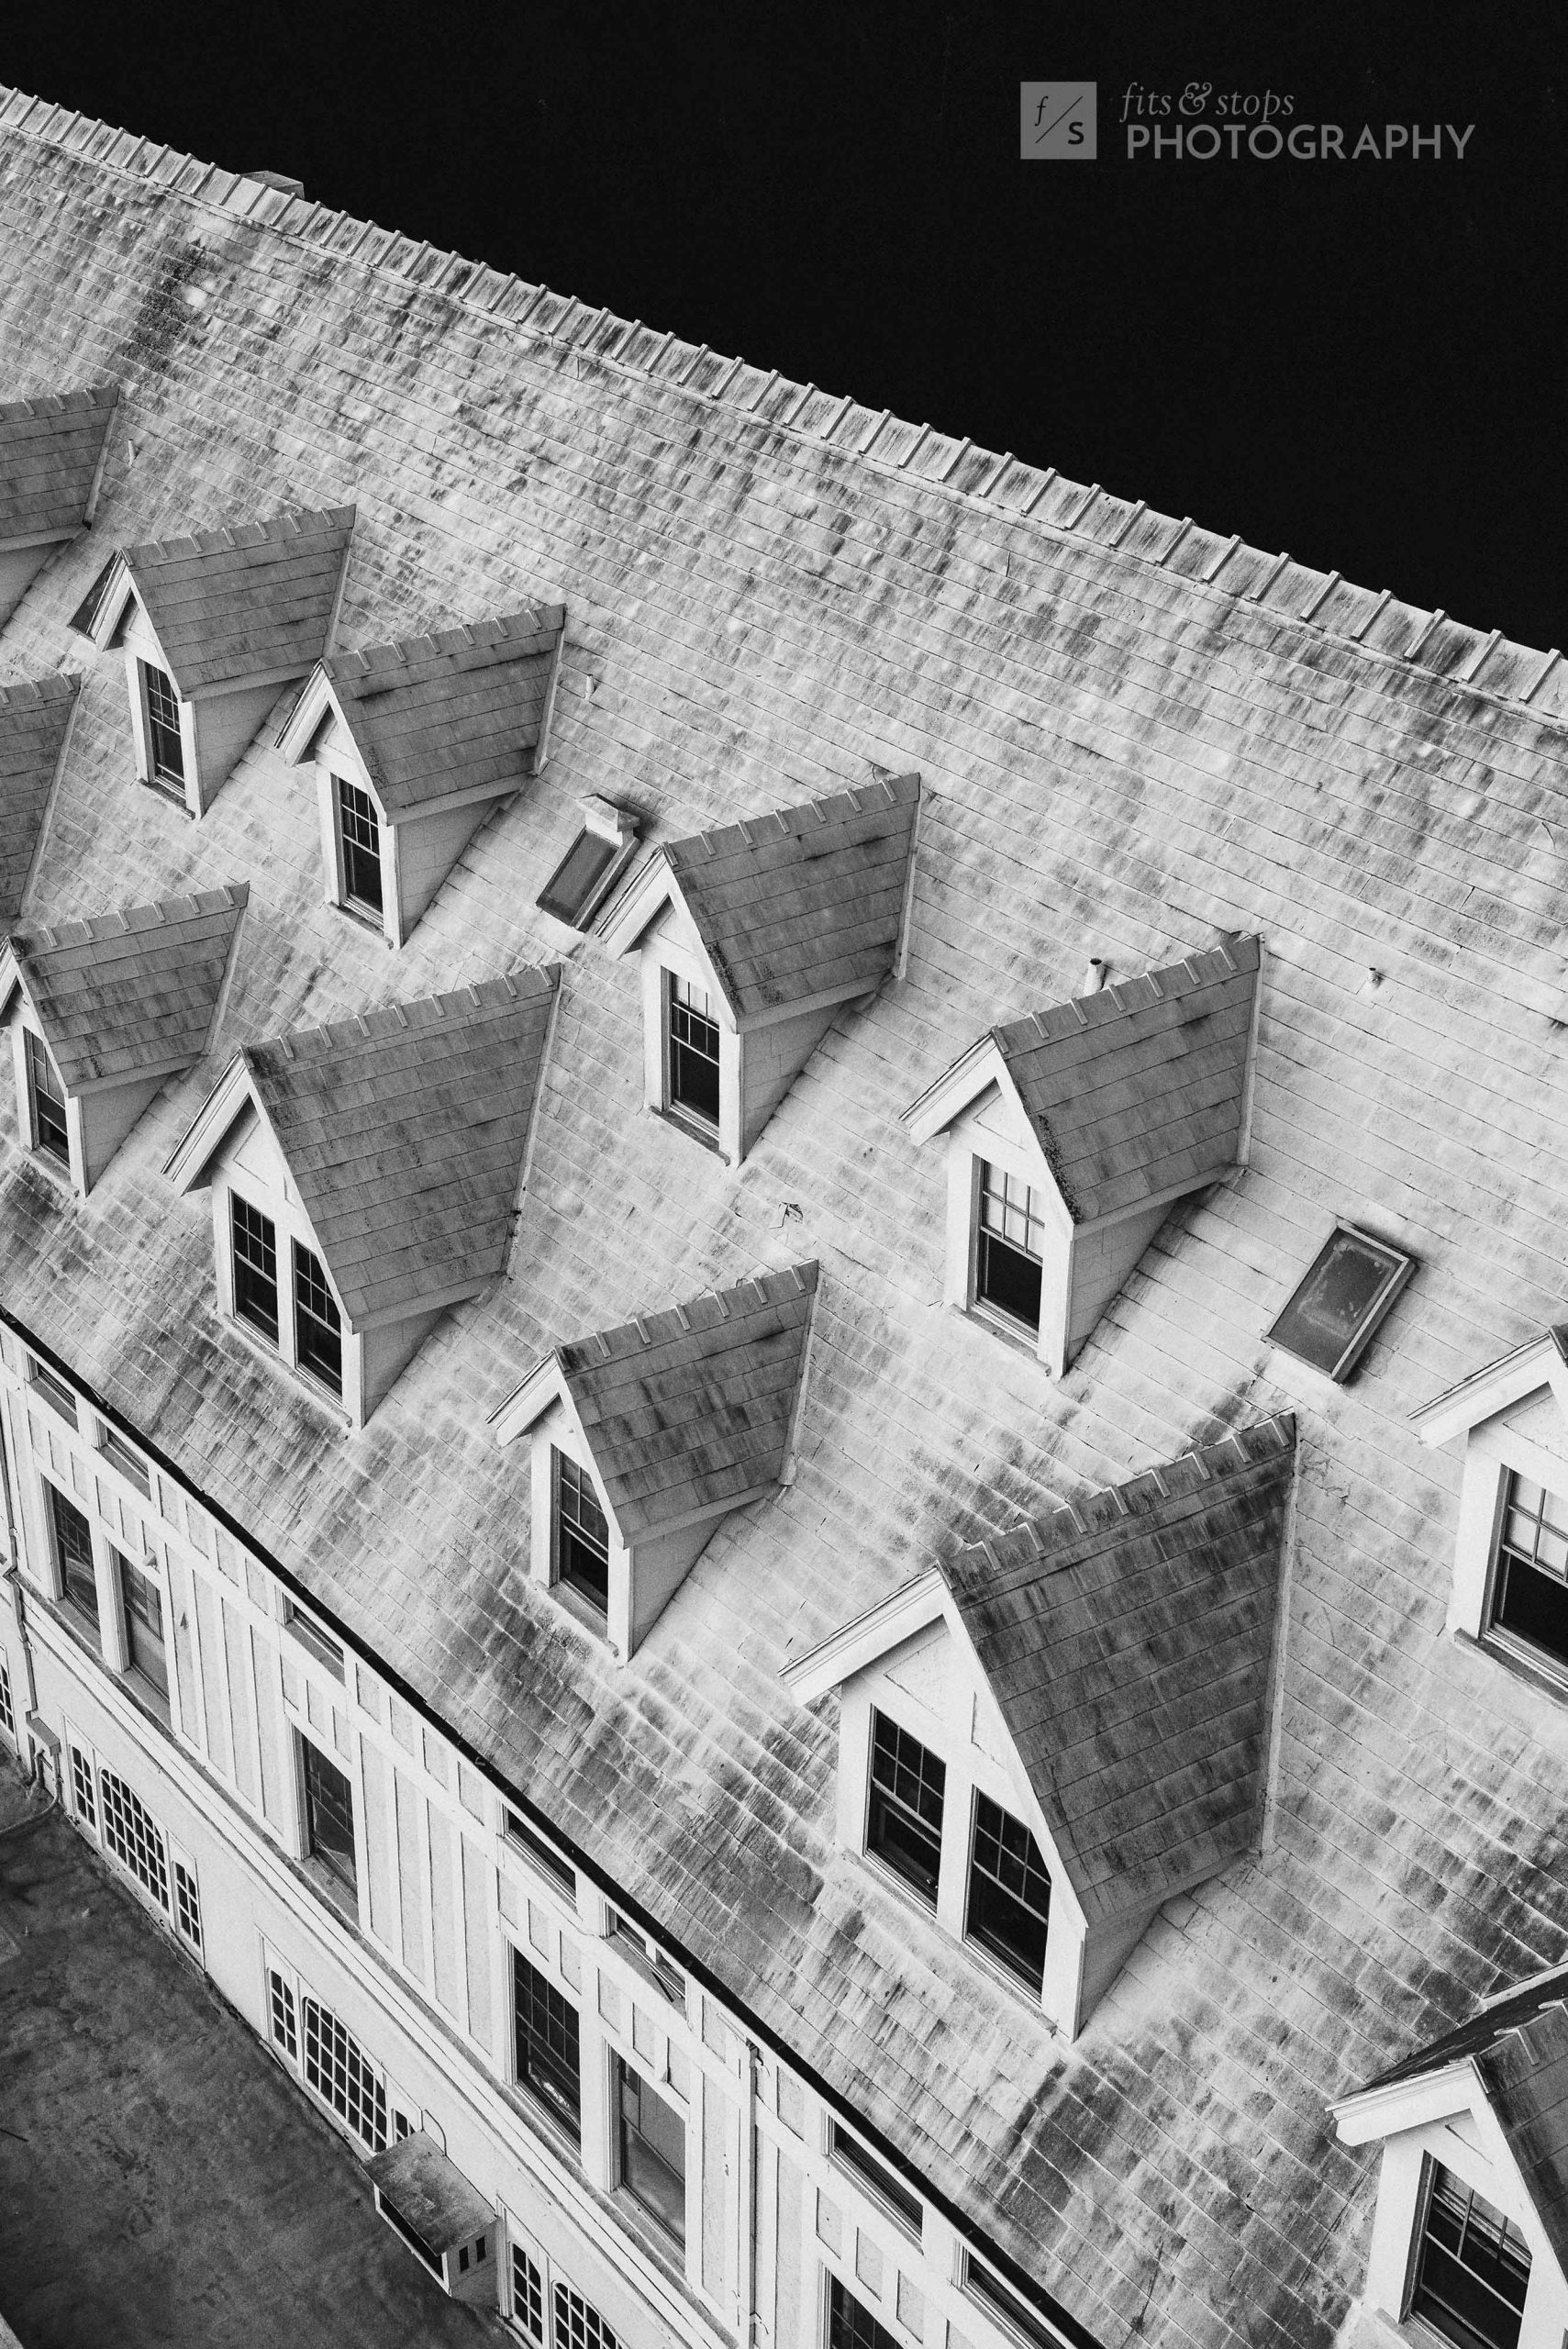 A high contrast black and white photo of the gables of Claremont Inn and Resort in Berkeley California, shot down from the tower